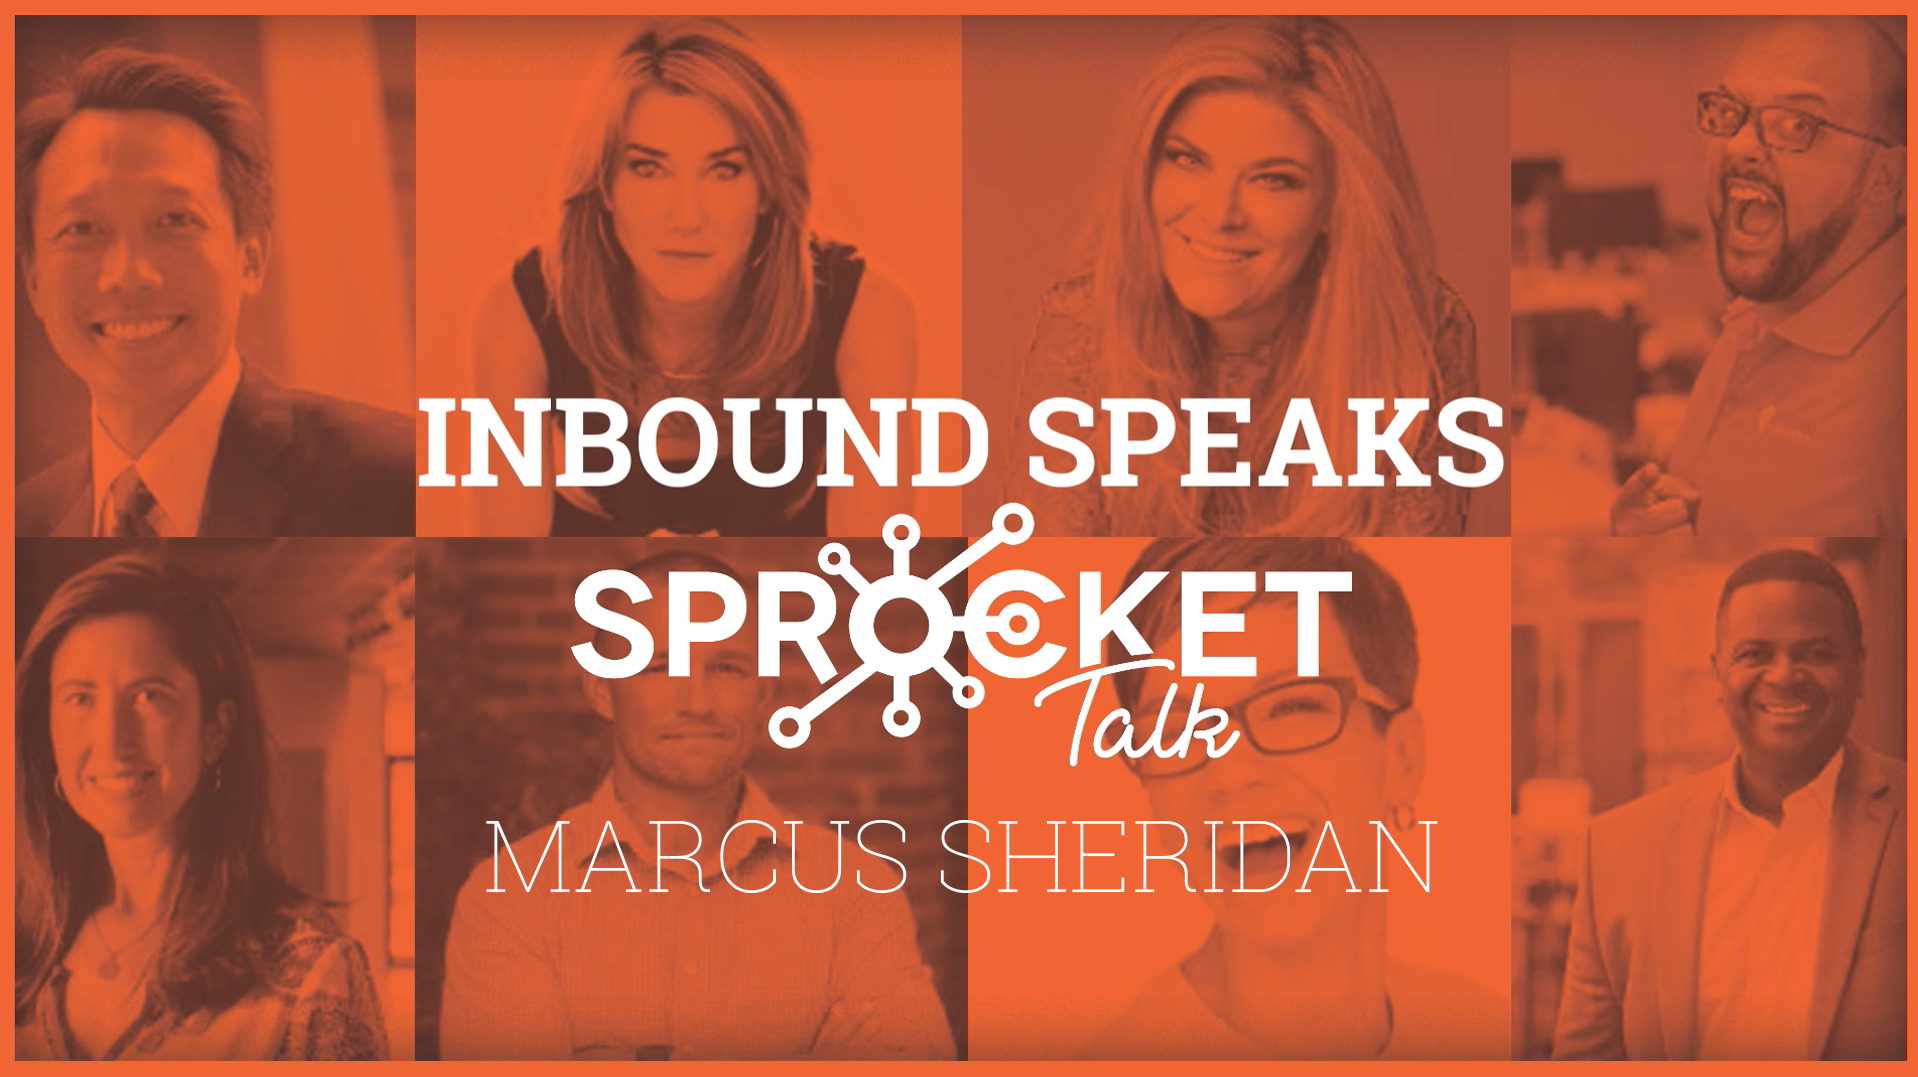 Marcus Sheridan 7 Secrets to Content That Generates the Greatest Results, ROI, and Lasting Impact #Inbound19